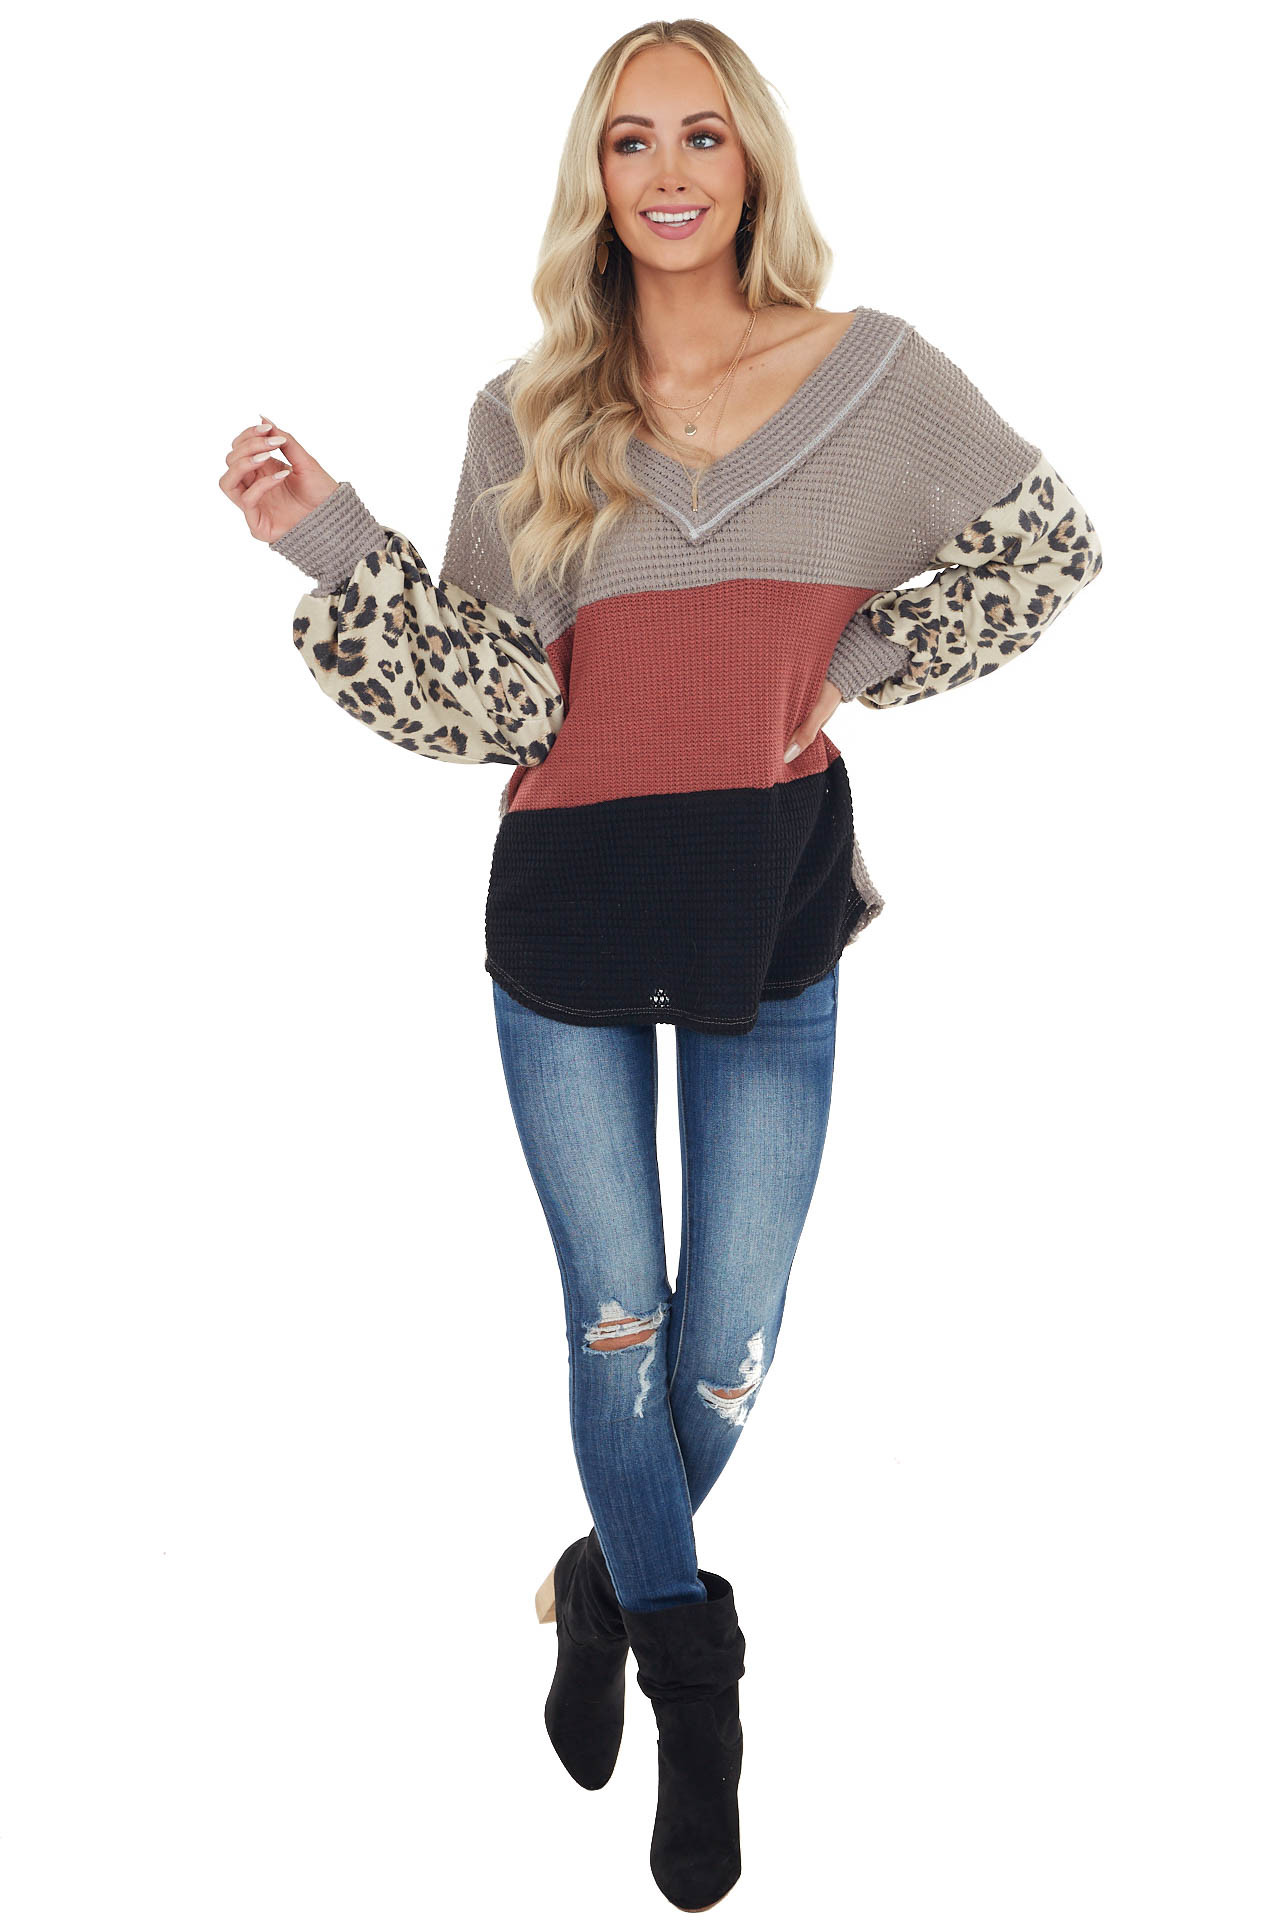 Marsala Colorblock Top with Contrast Leopard Print Sleeves